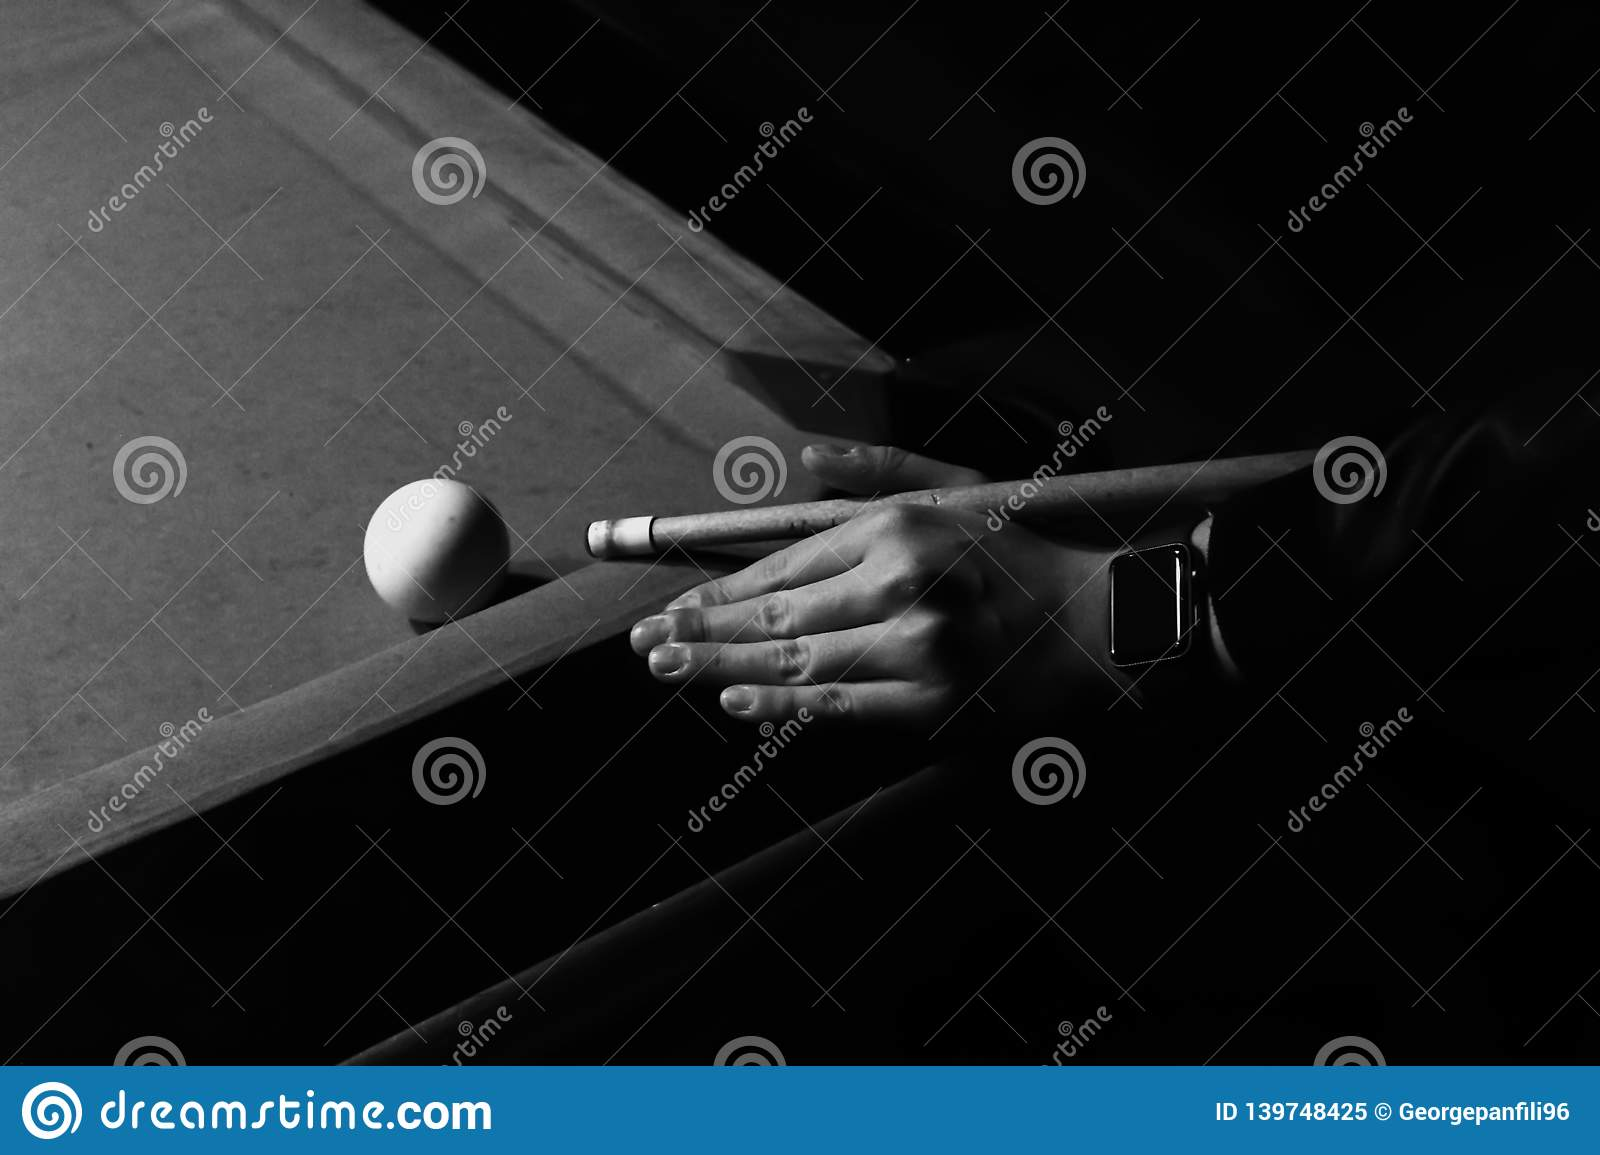 Playing in the billiards. Art photo